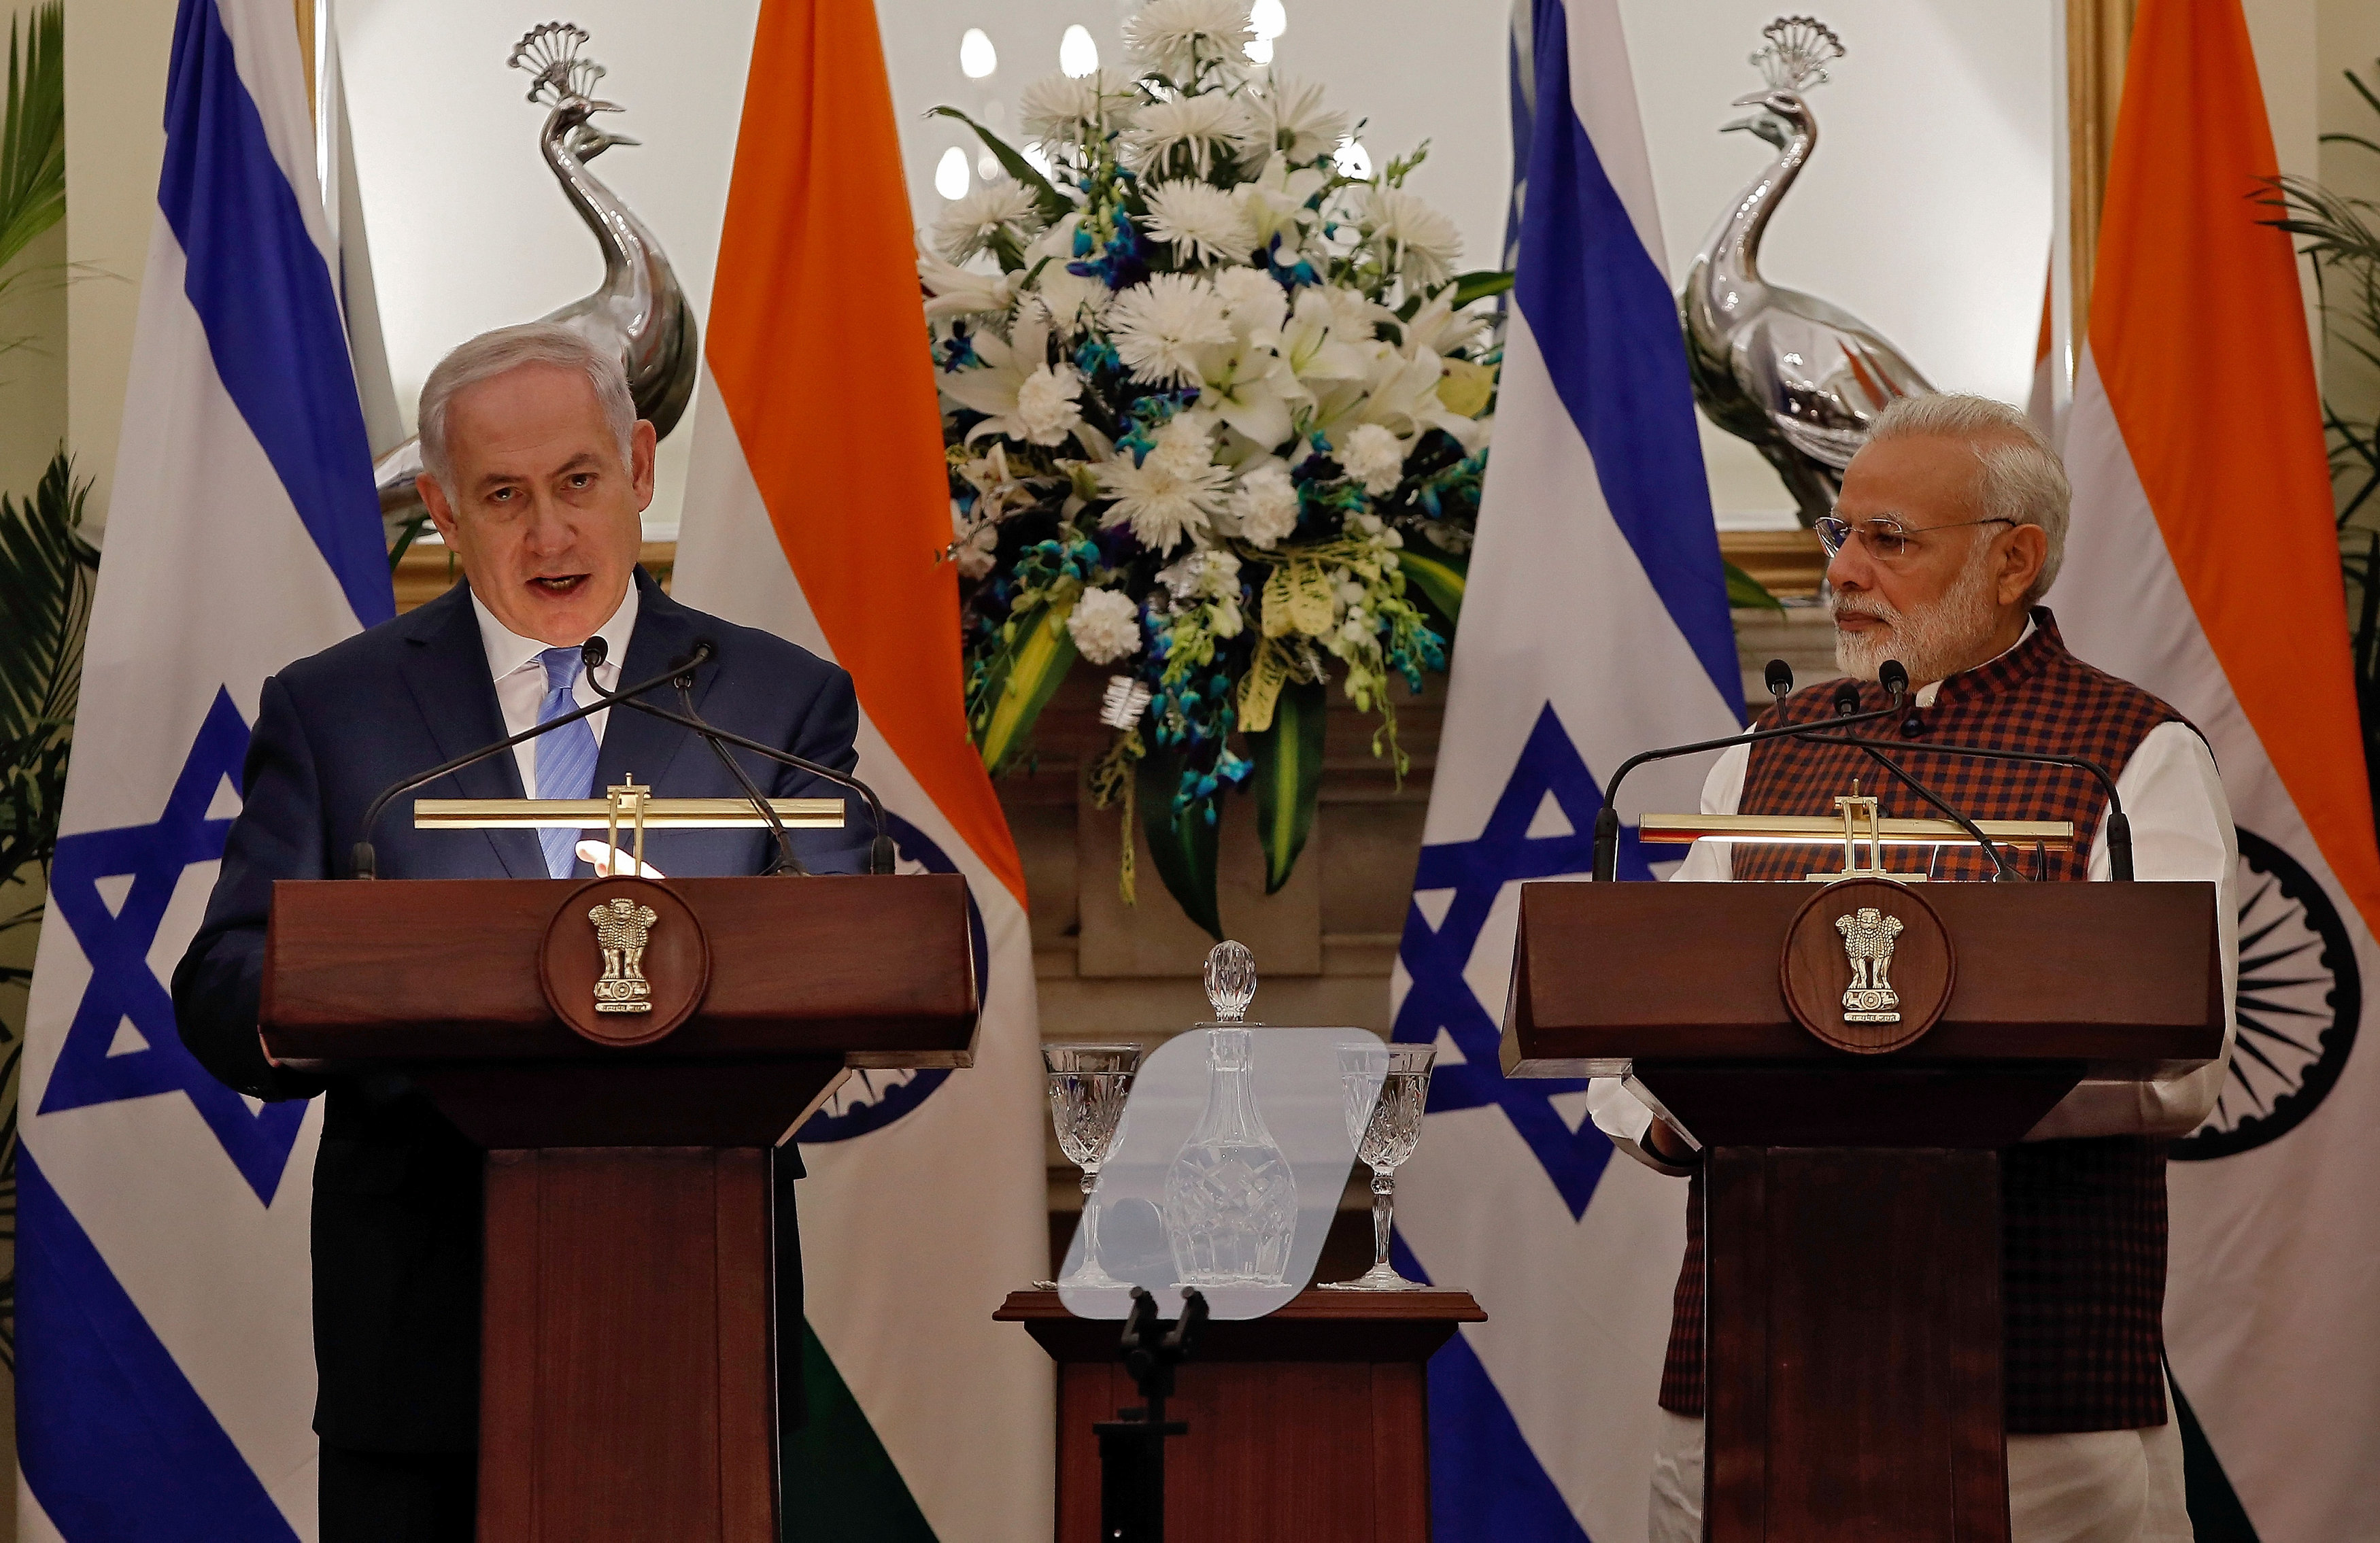 Israeli Prime Minister Benjamin Netanyahu speaks as his Indian counterpart Narendra Modi looks on during a signing of agreements ceremony at Hyderabad House in New Delhi, India January 15, 2018.